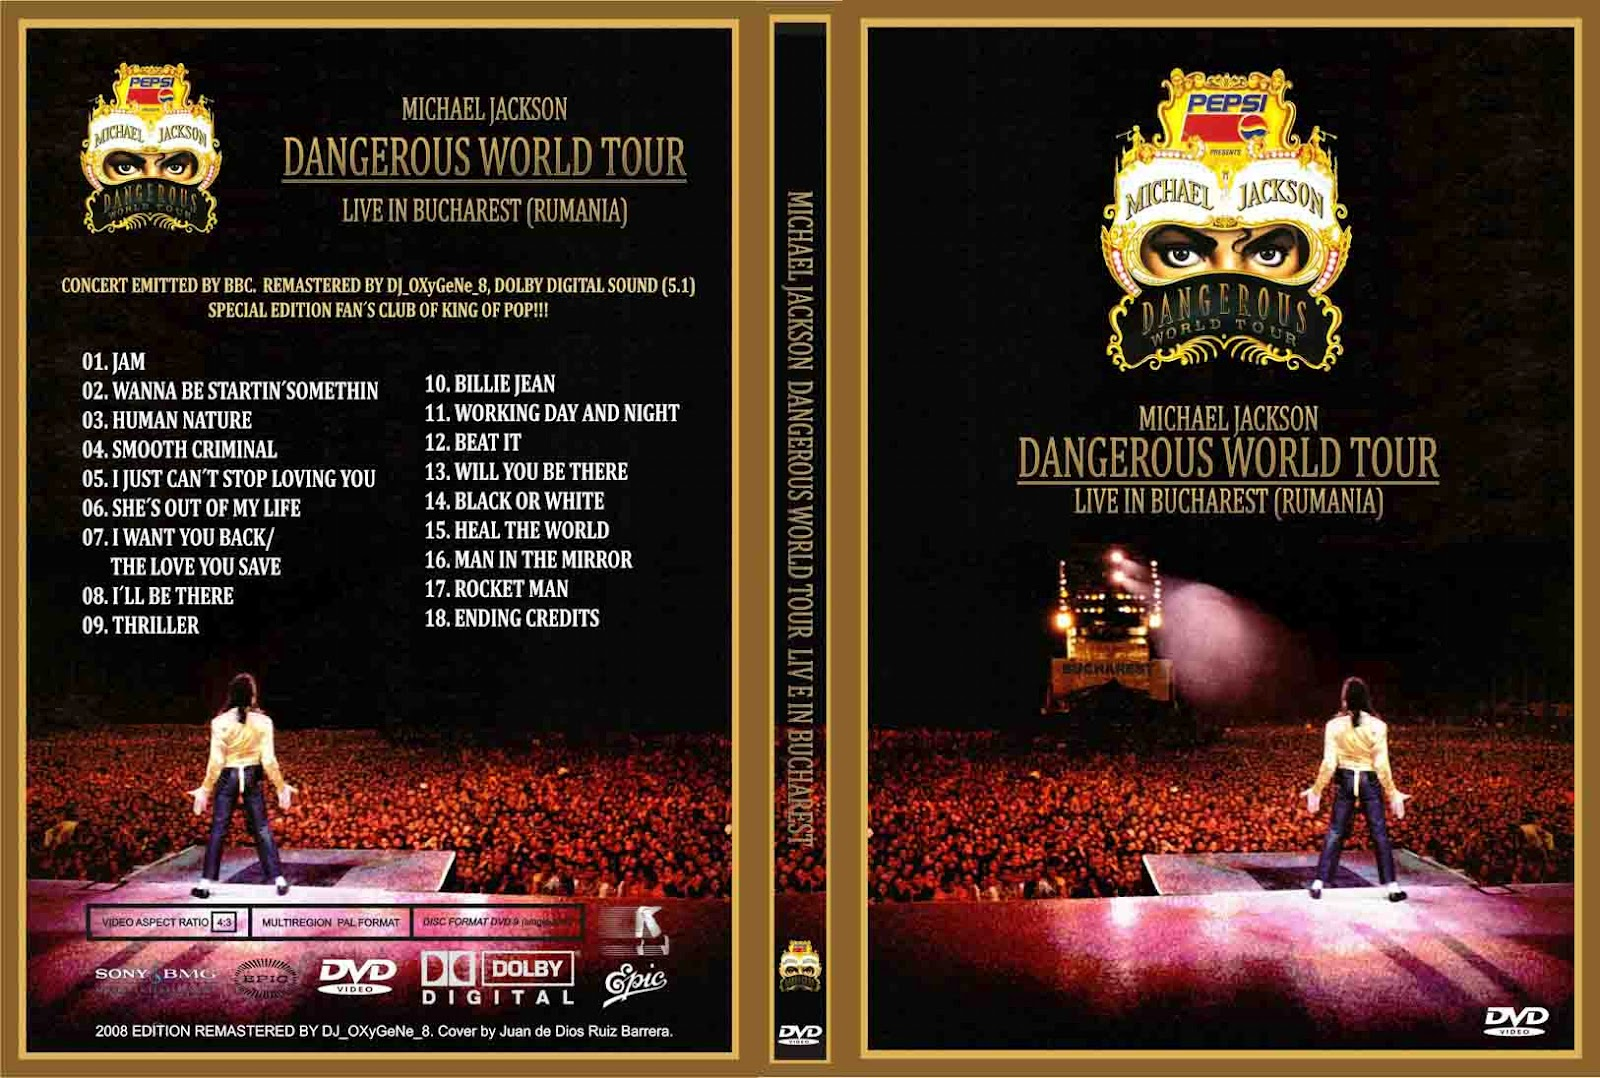 http://1.bp.blogspot.com/-qqGkOYwj5NQ/T-PCVuS-BDI/AAAAAAAAGT4/FFbz2QqTOYU/s1600/DVD+Cover+Low+Resolution+-+Michael+Jackson+-+Live+In+Bucharest+(Dangerous+World+Tour)+(BBC+.jpg